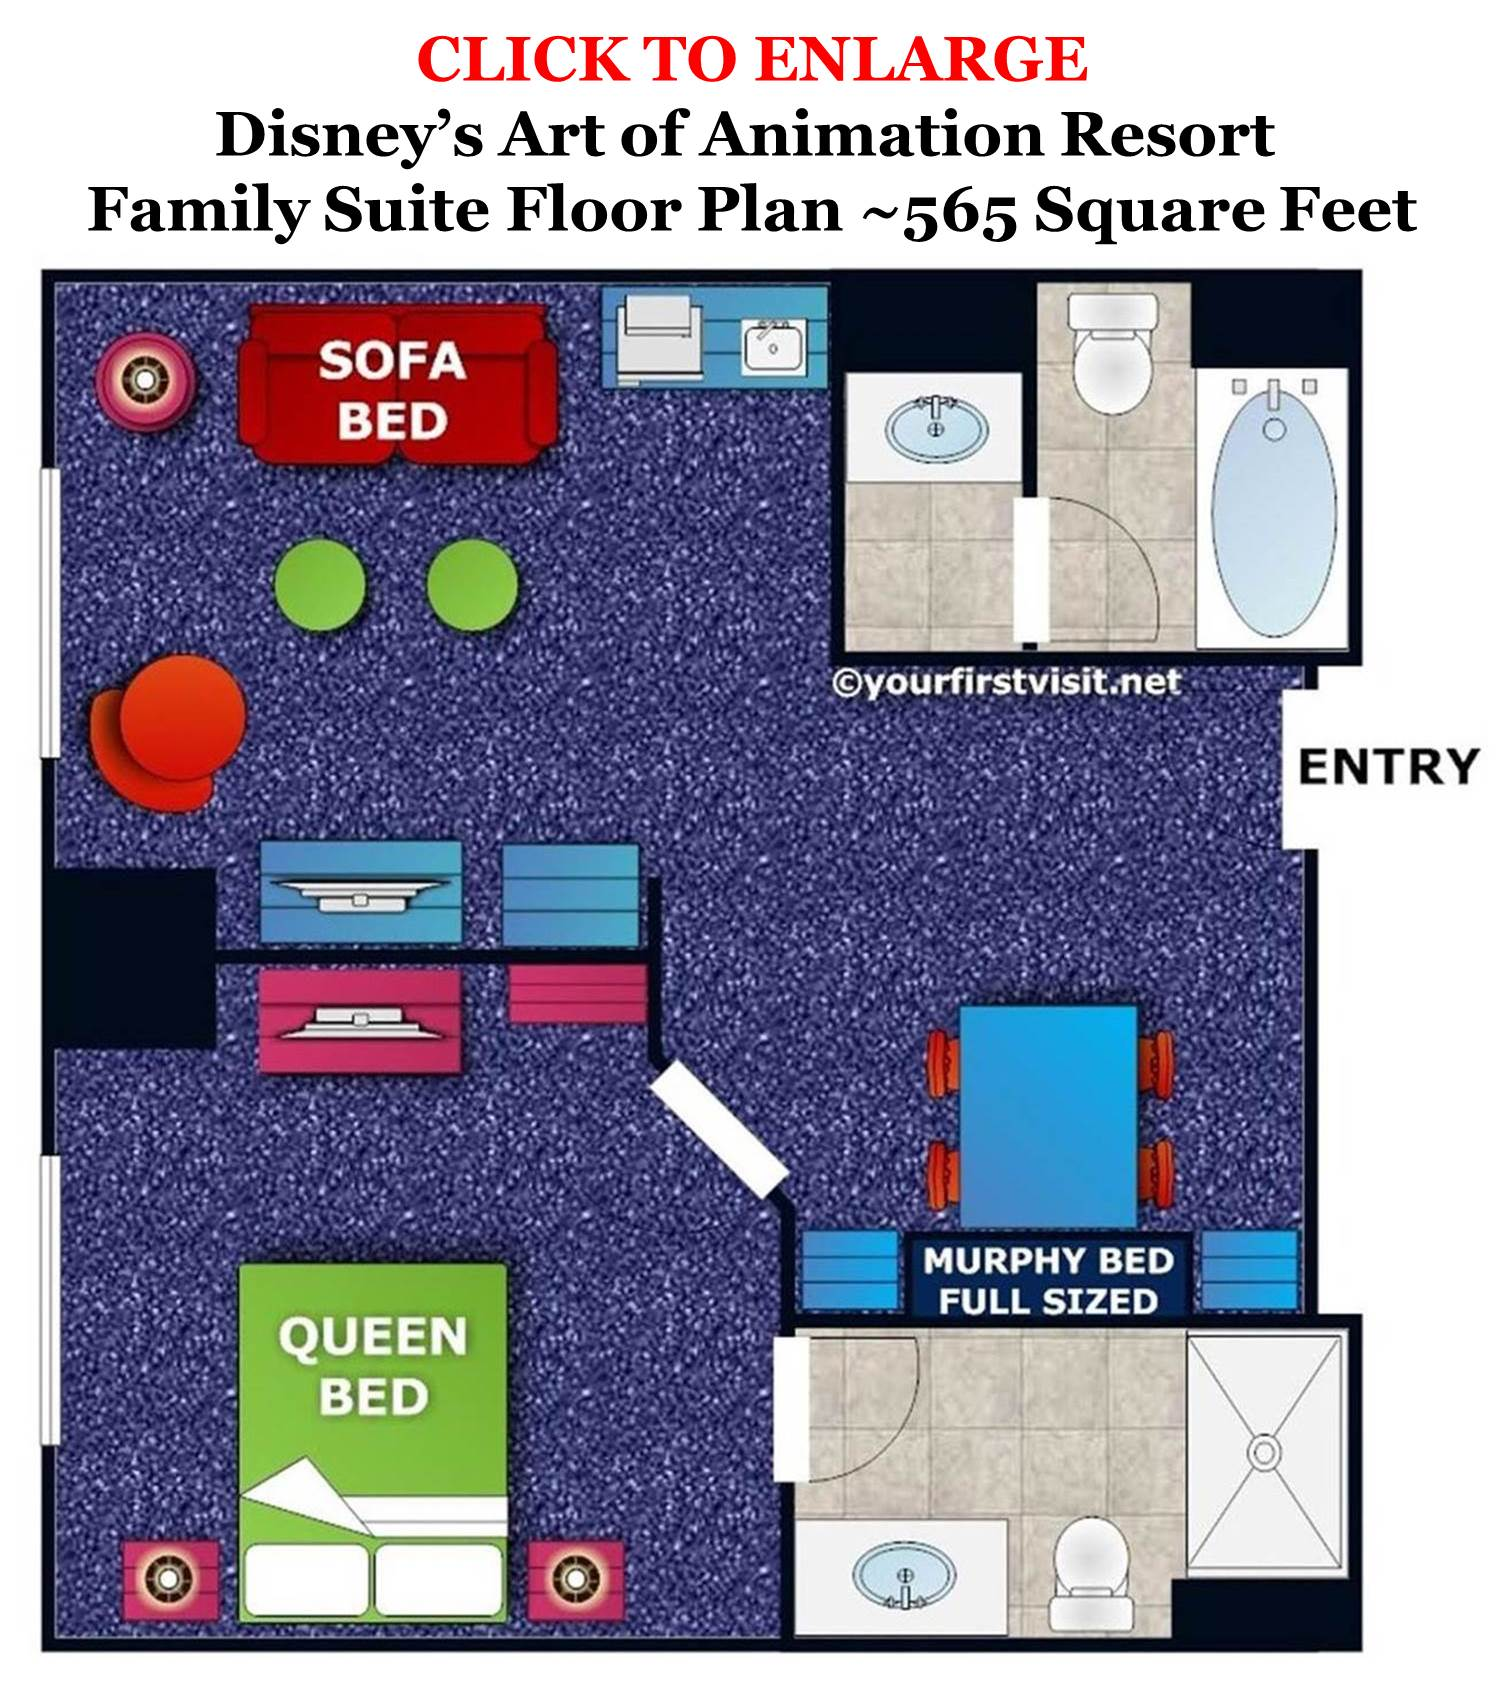 Master Suites Floor Plans Review Disney S Art Of Animation Resort